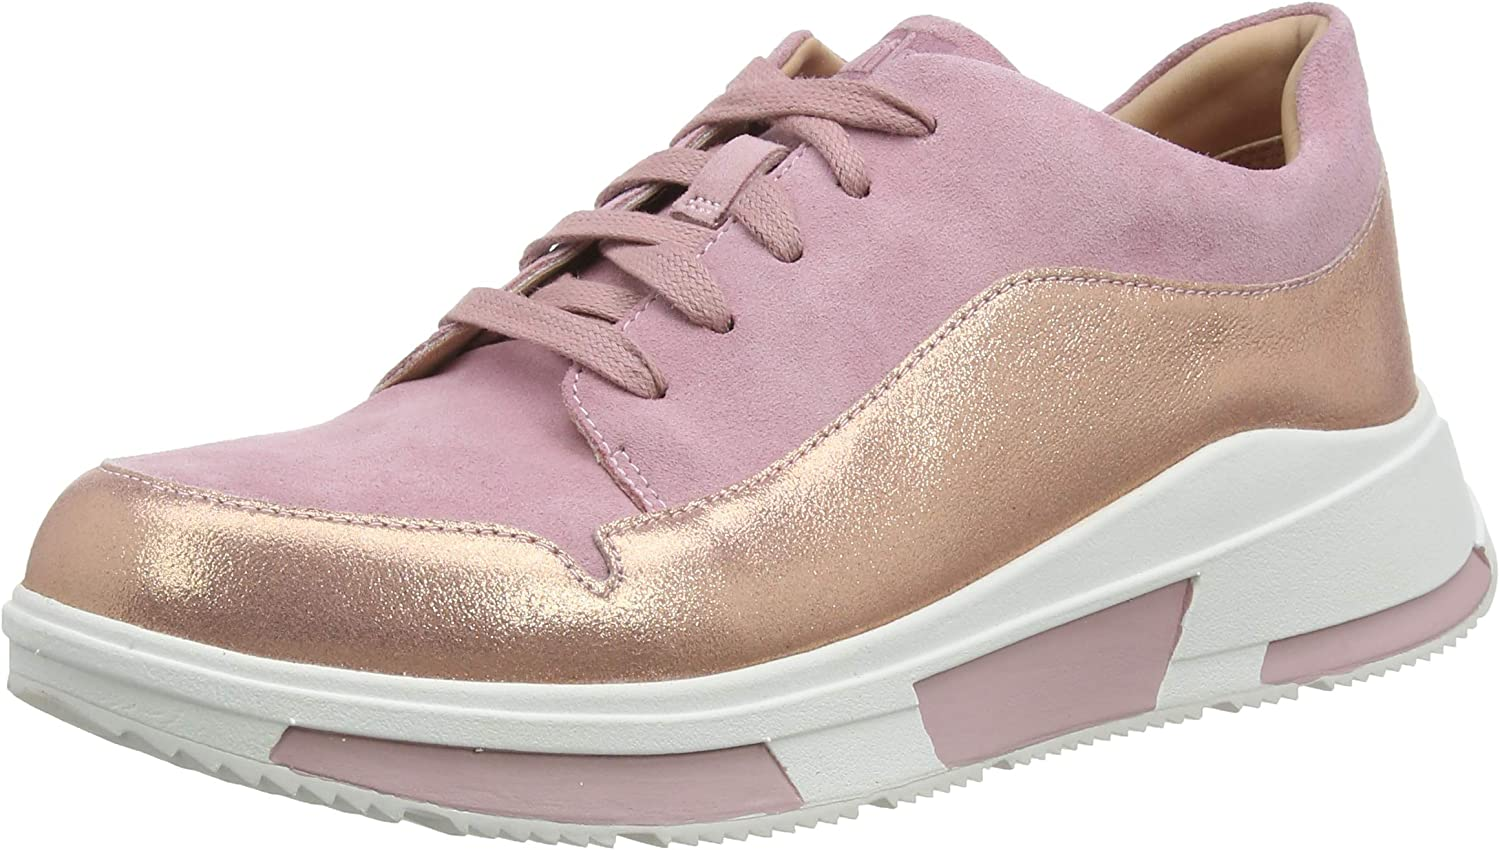 FitFlop Women's Great interest Low-top Animer and price revision Trainers